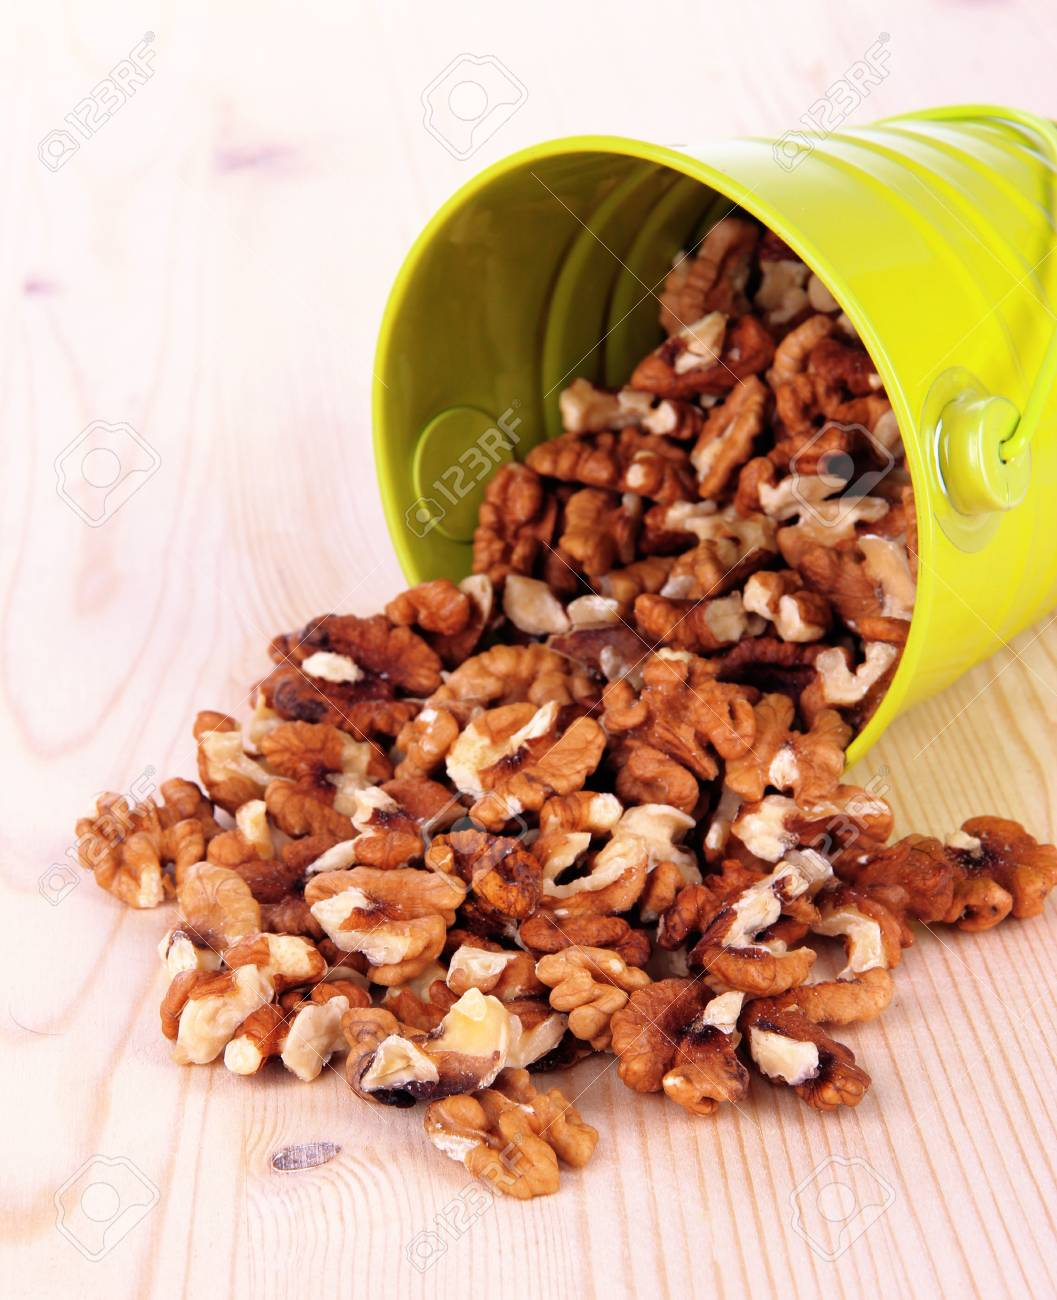 Overturned bucket with nuts on wooden background Stock Photo - 18849365